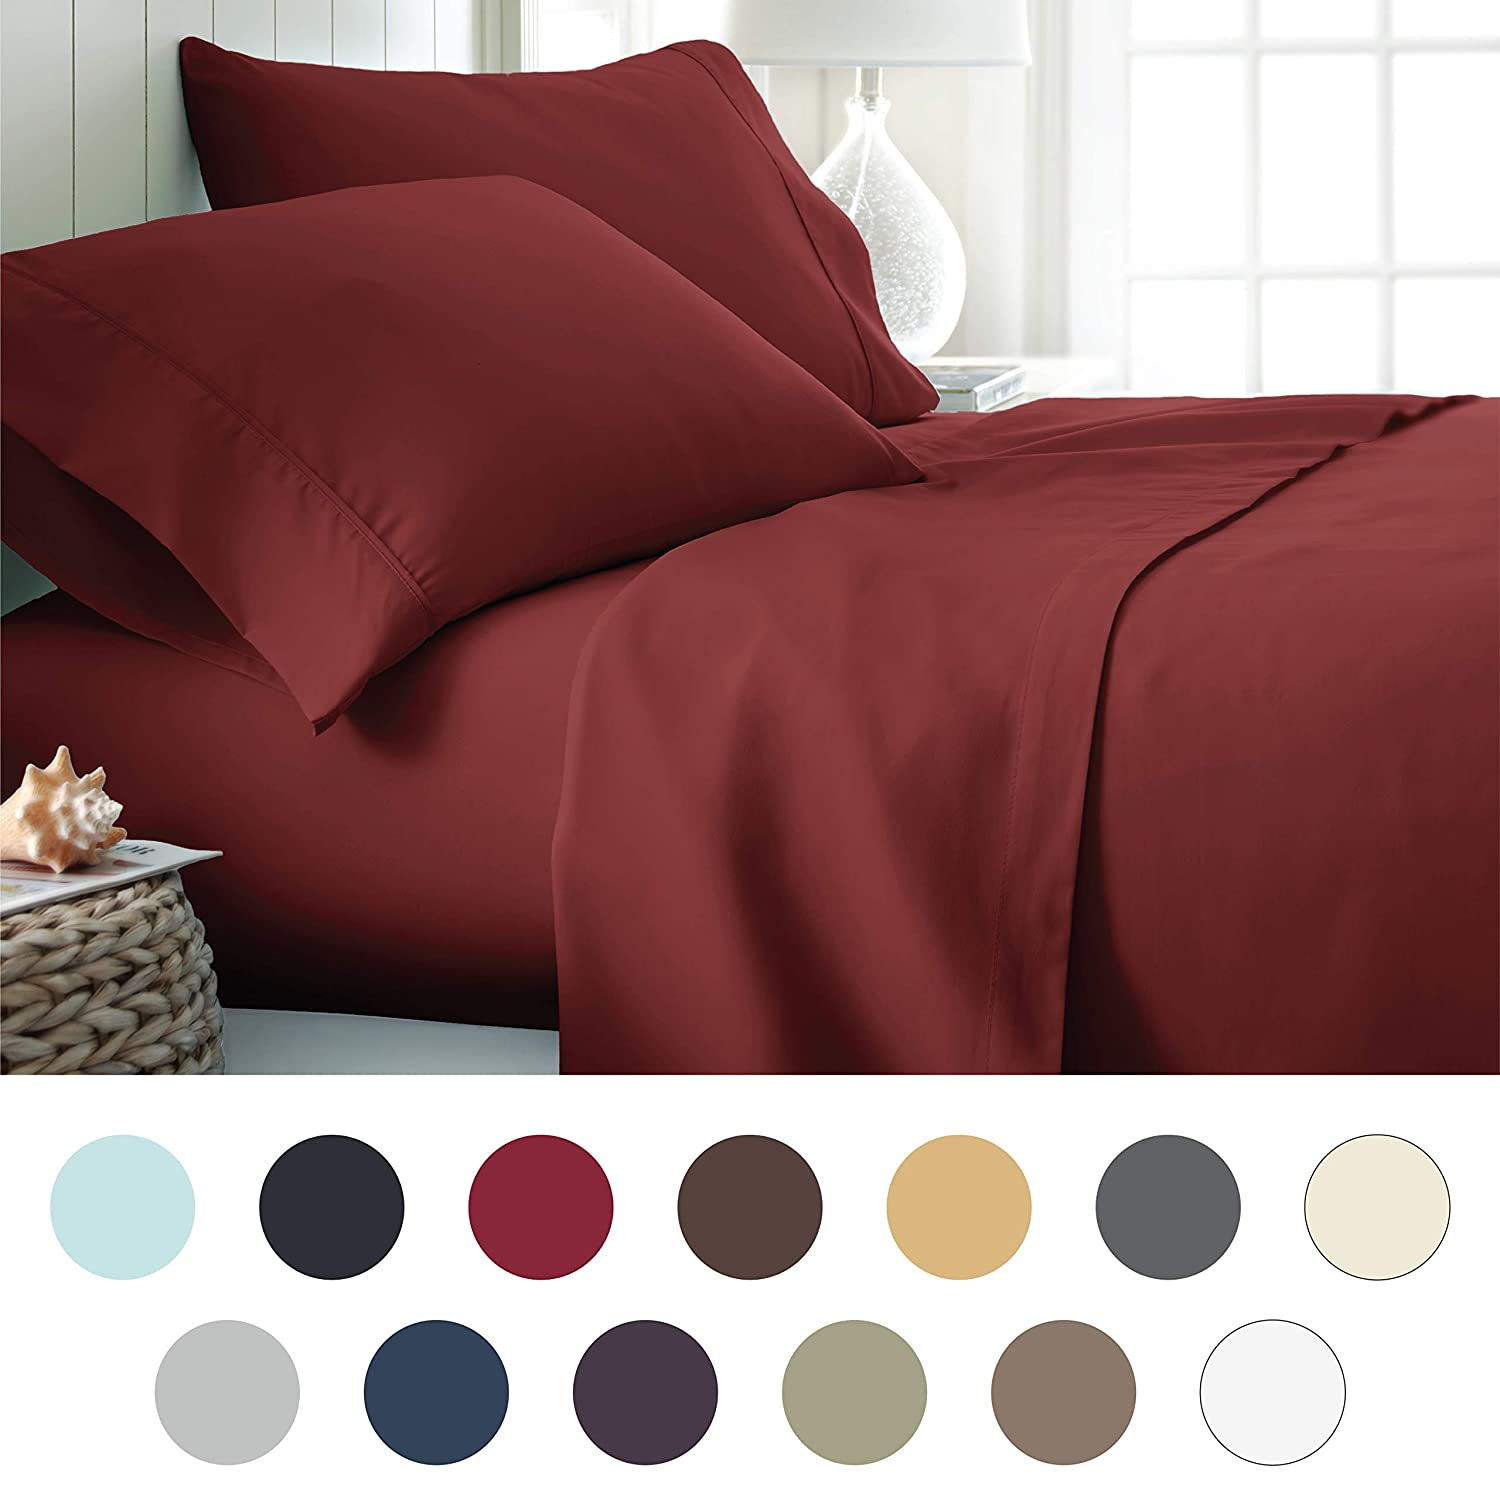 ienjoy Home Hotel Collection Luxury Soft Brushed Bed Sheet Set, Hypoallergenic, Deep Pocket, Twin X-Large, LGray BLL-4PC-TWINXL-LGRAY